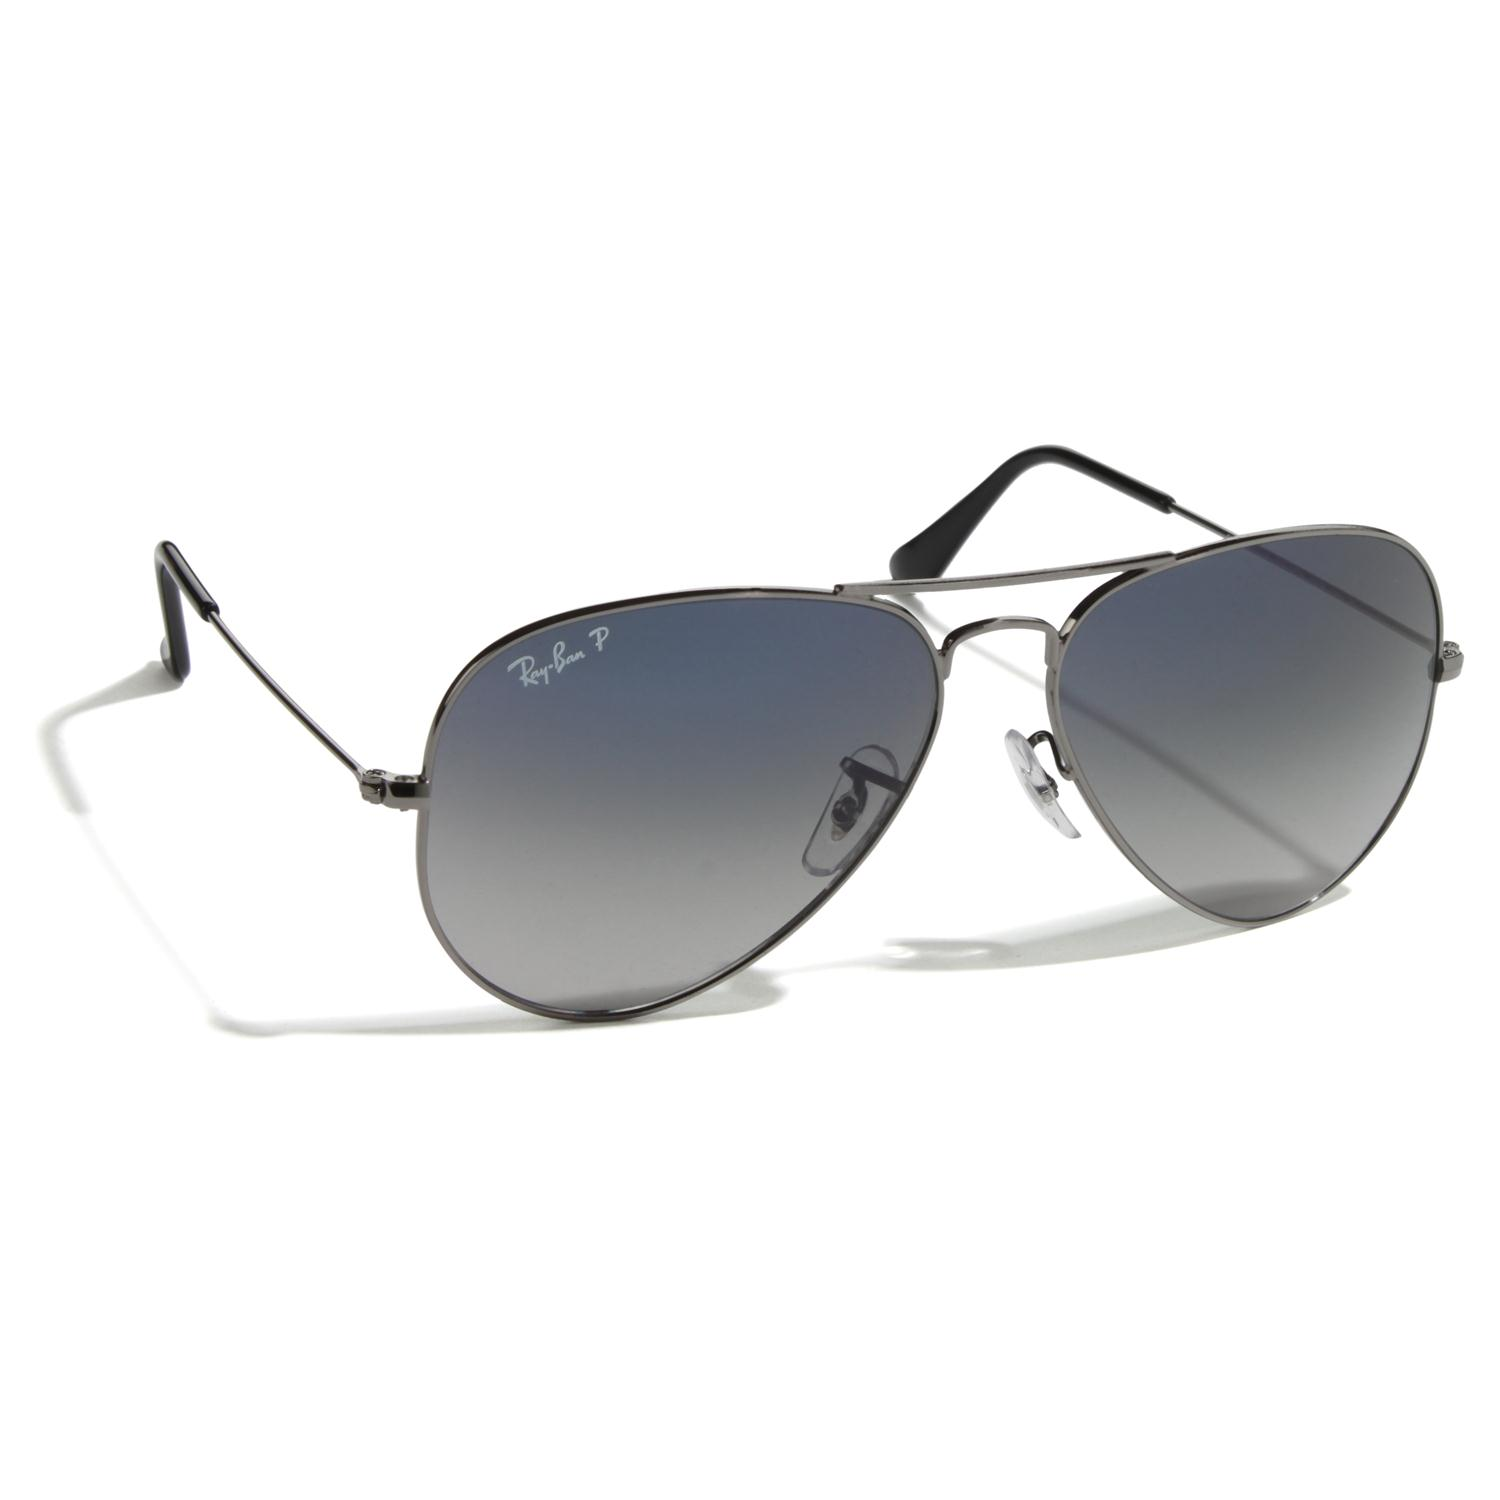 Aviator Polarized Sunglasses Imb9